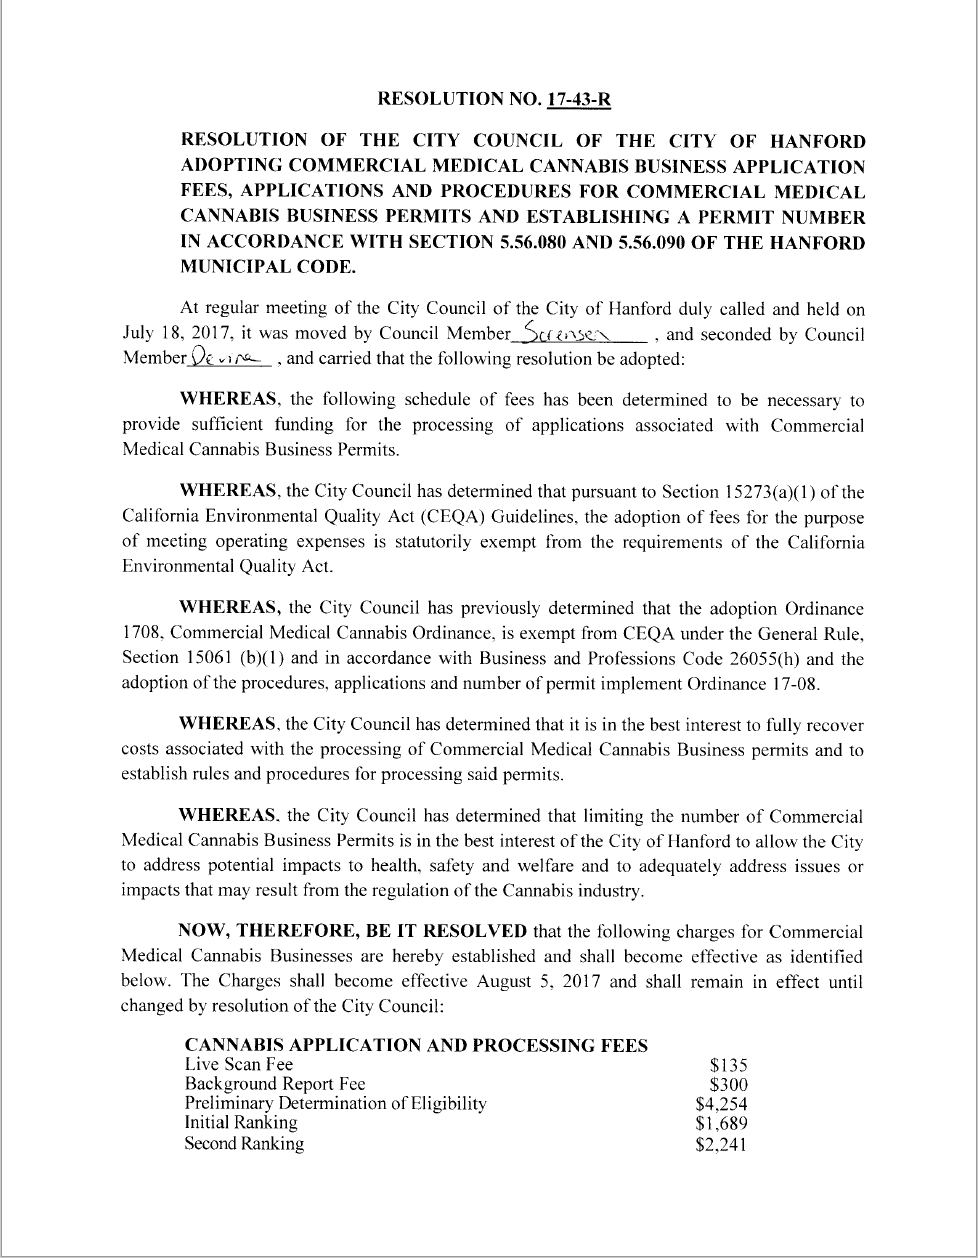 Resolution 17-43-R.png